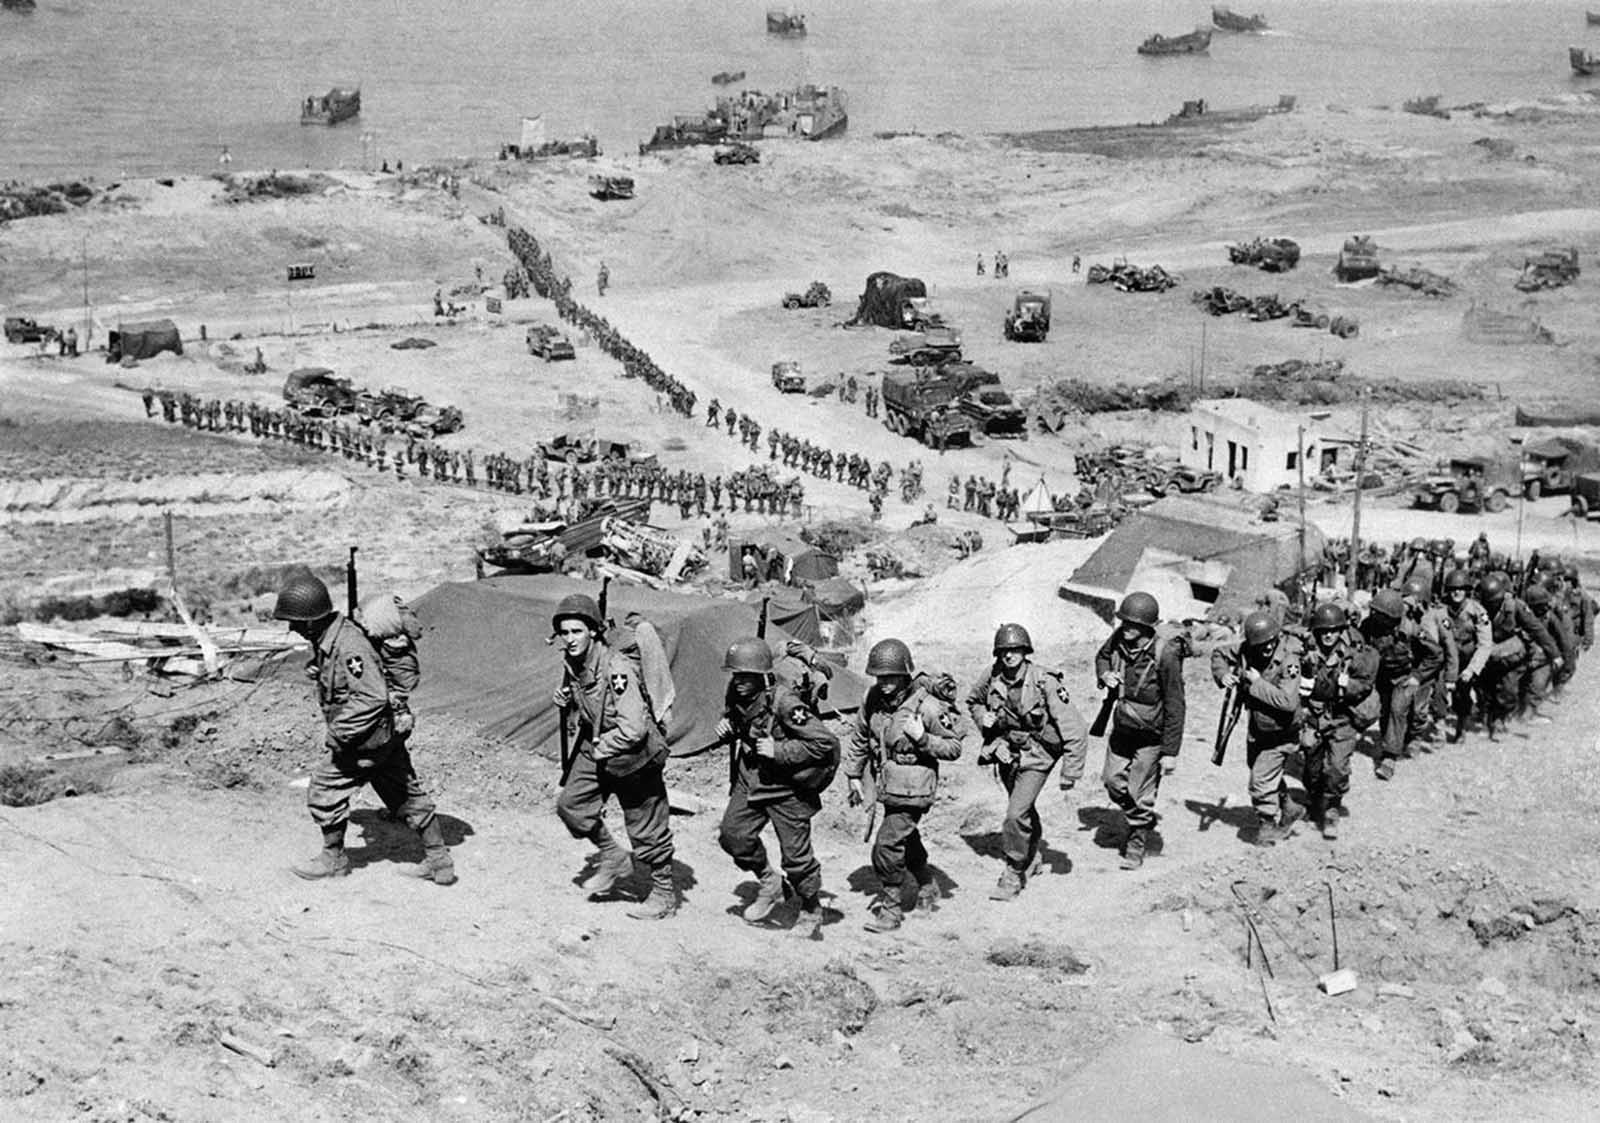 Reinforcements for initial allied invaders of France, long lines of troops and supply trucks begin their march on June 18, 1944, in Normandy.